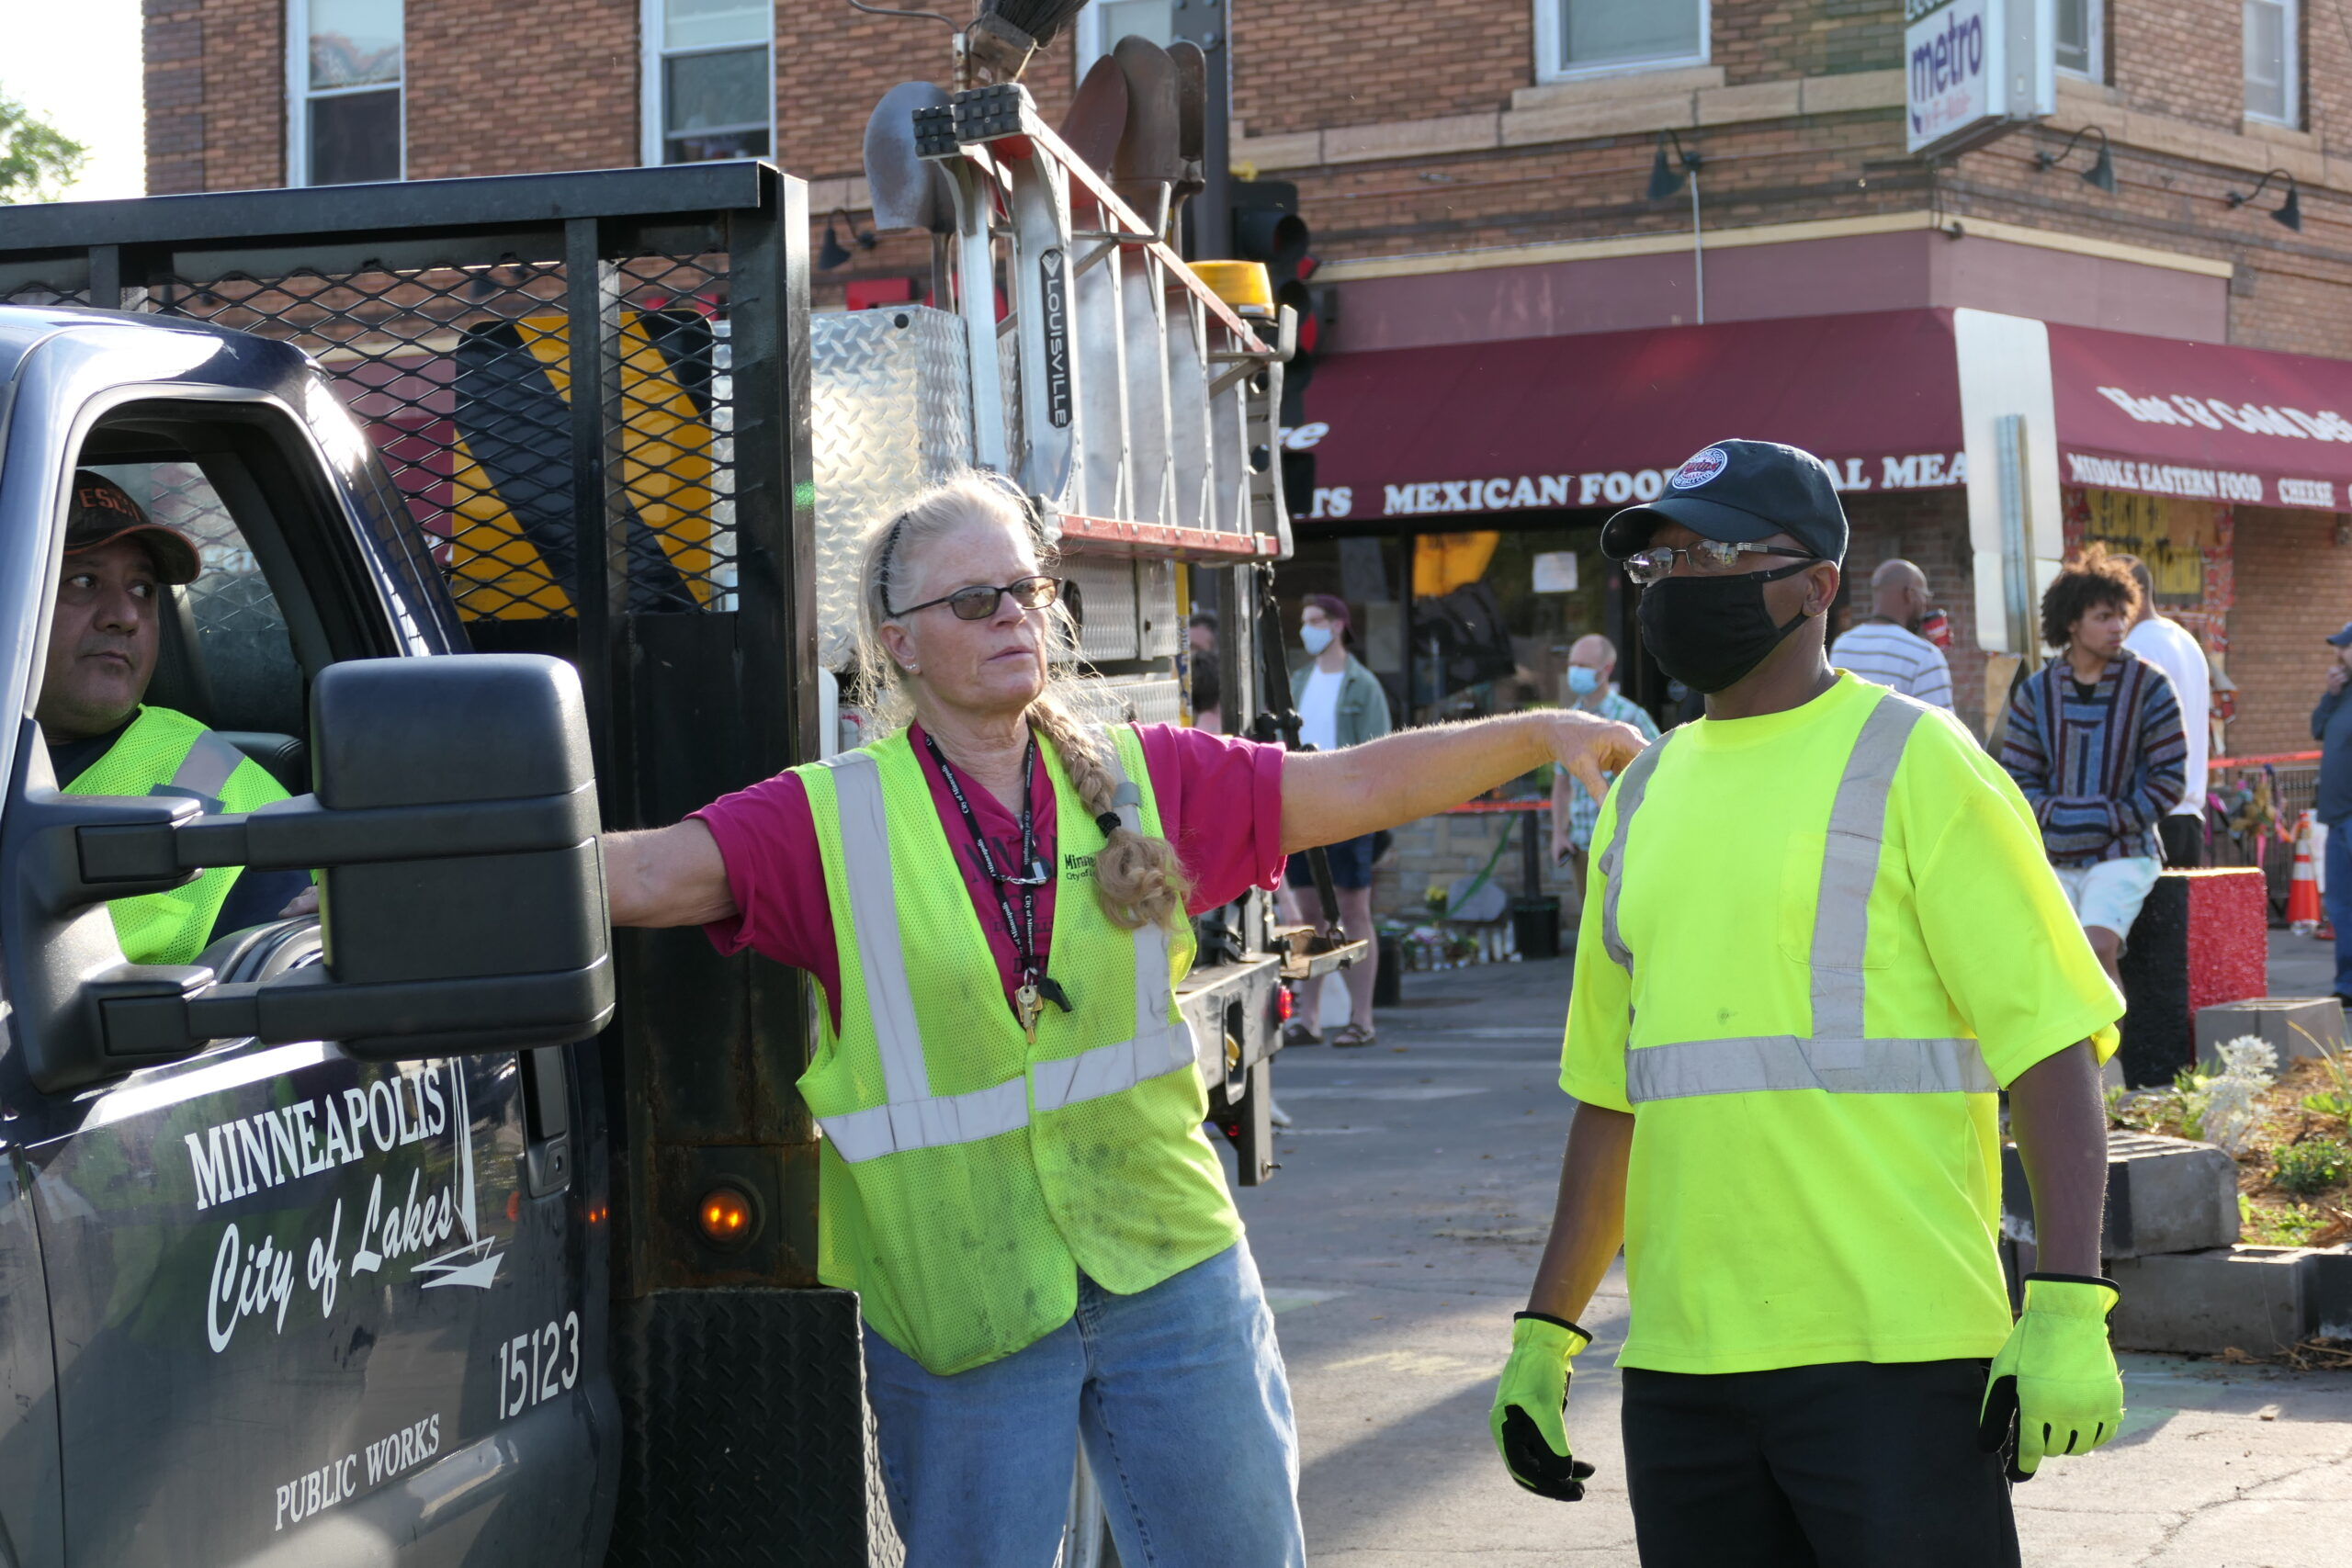 City workers work to reopen George Floyd Square to traffic